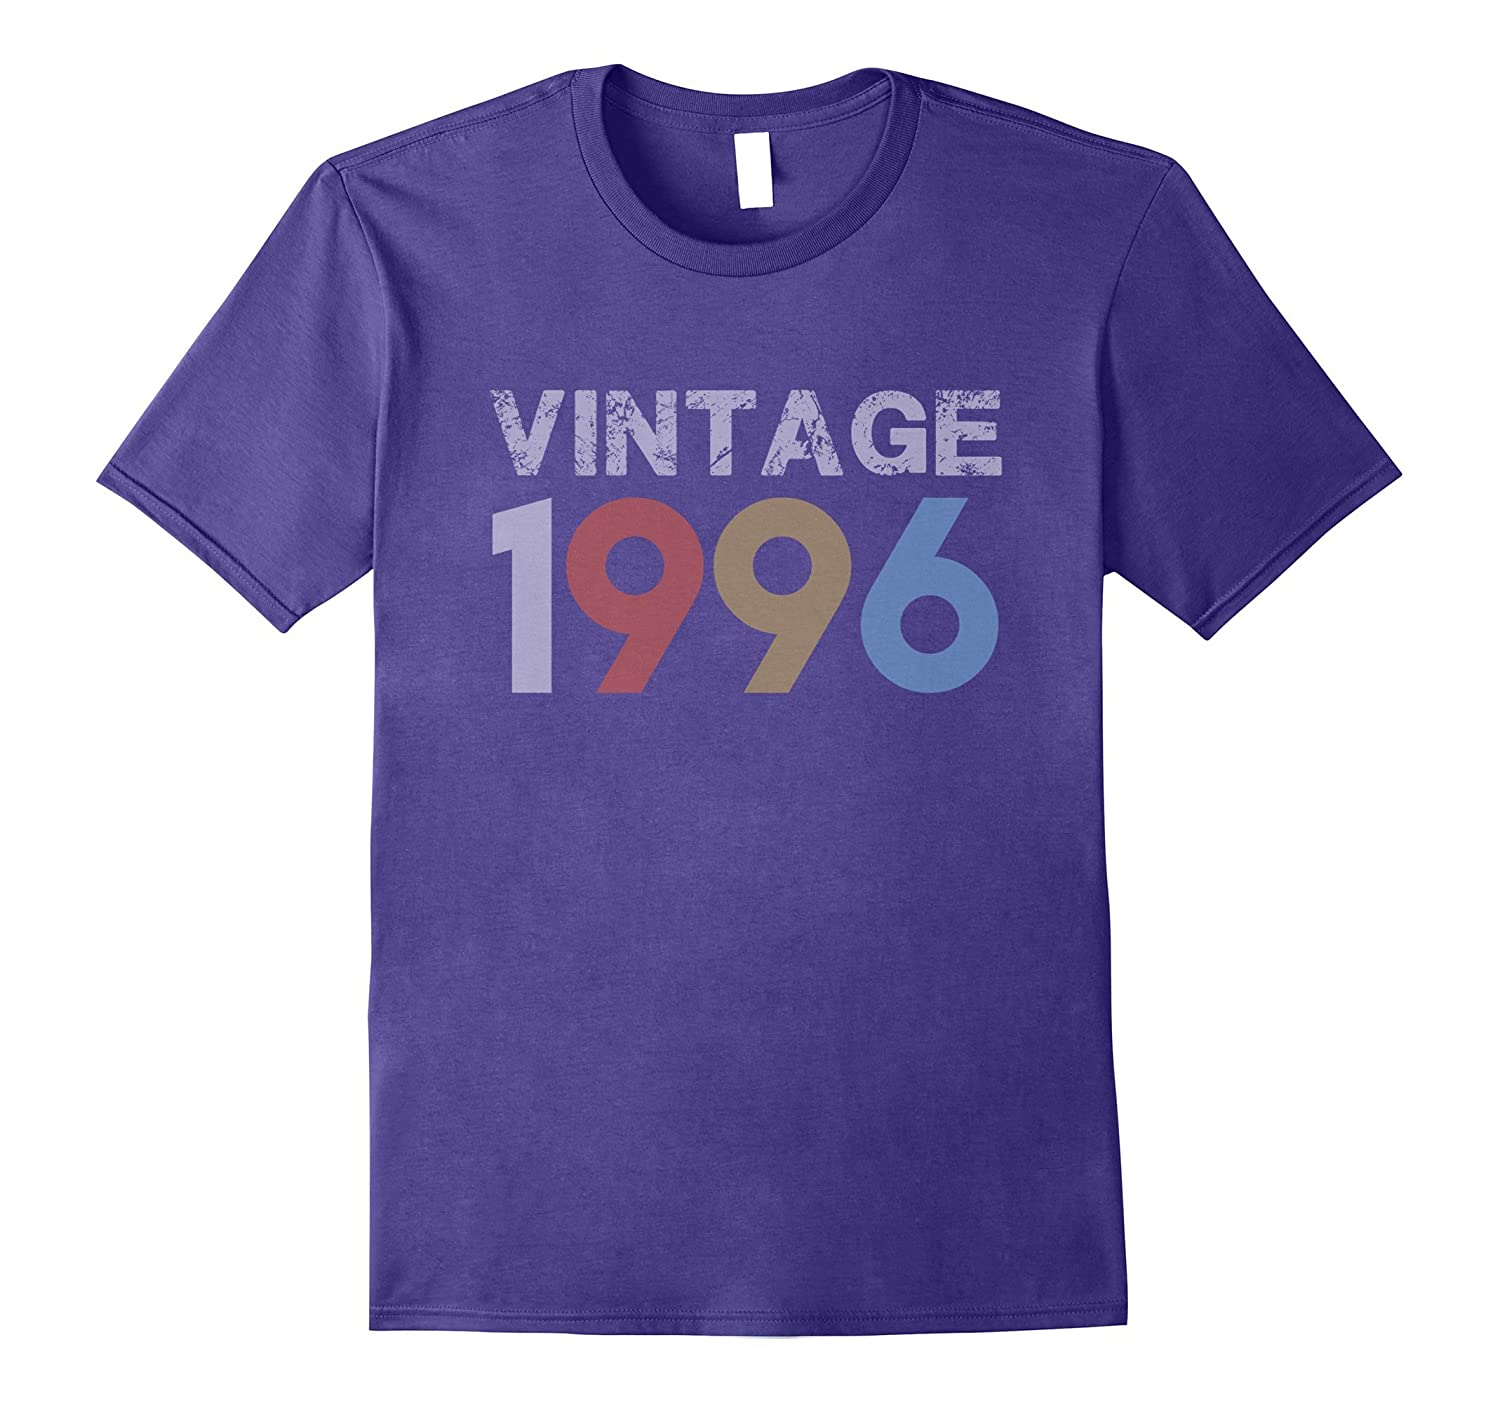 Vintage 1996 21st Birthday Gift For 21 Year Old T-Shirt-FL